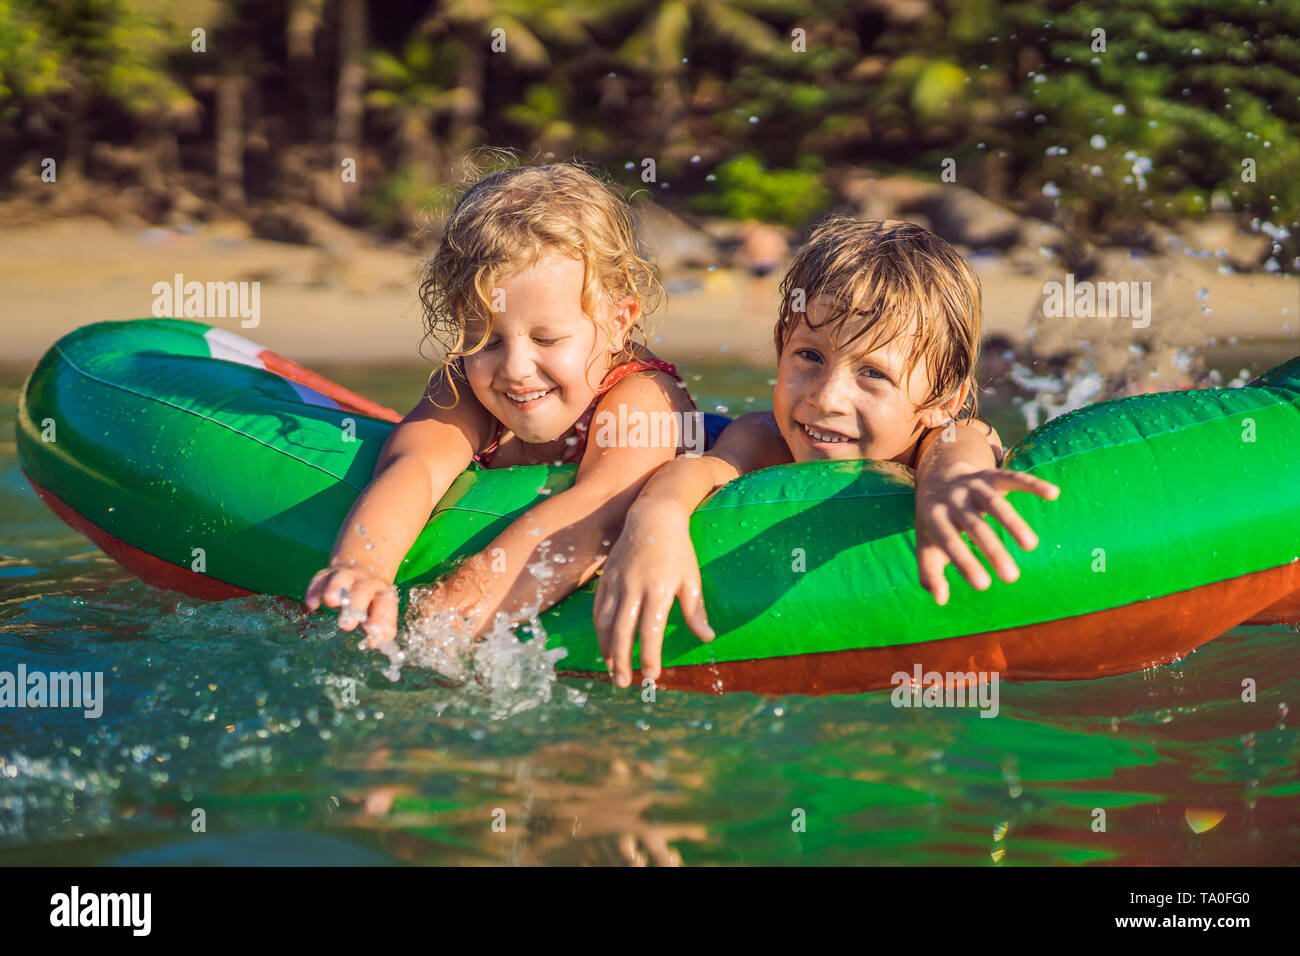 Children swim in the sea on an inflatable mattress and have fun Stock Photo